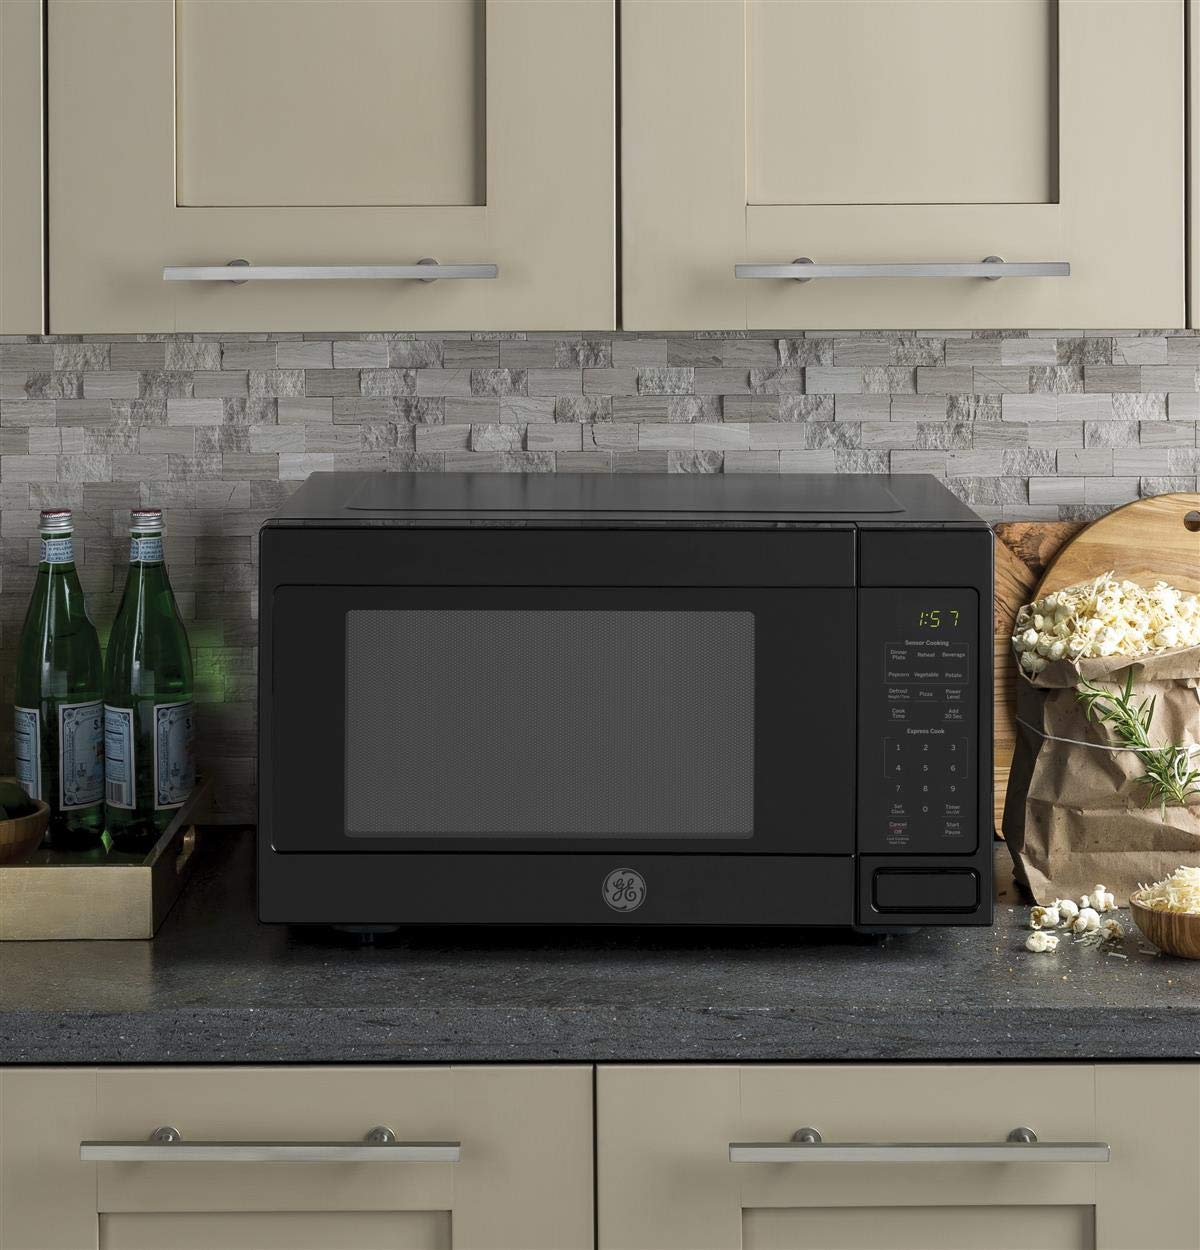 GE JES1657DMBB Microwave Oven by GE (Image #2)